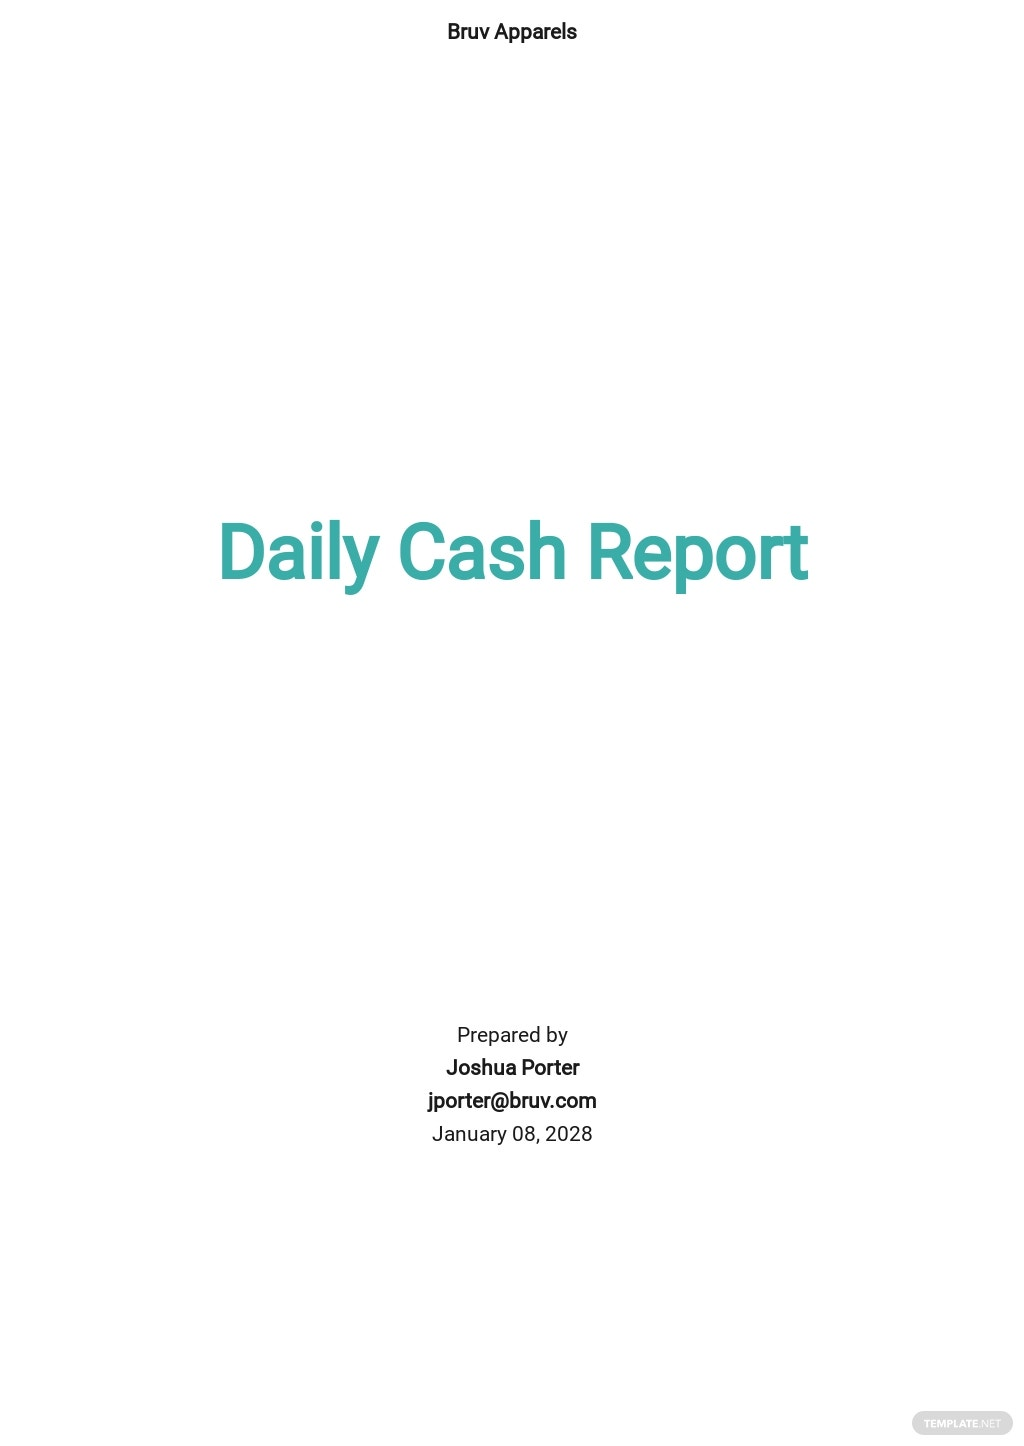 Daily Cash Report Template.jpe